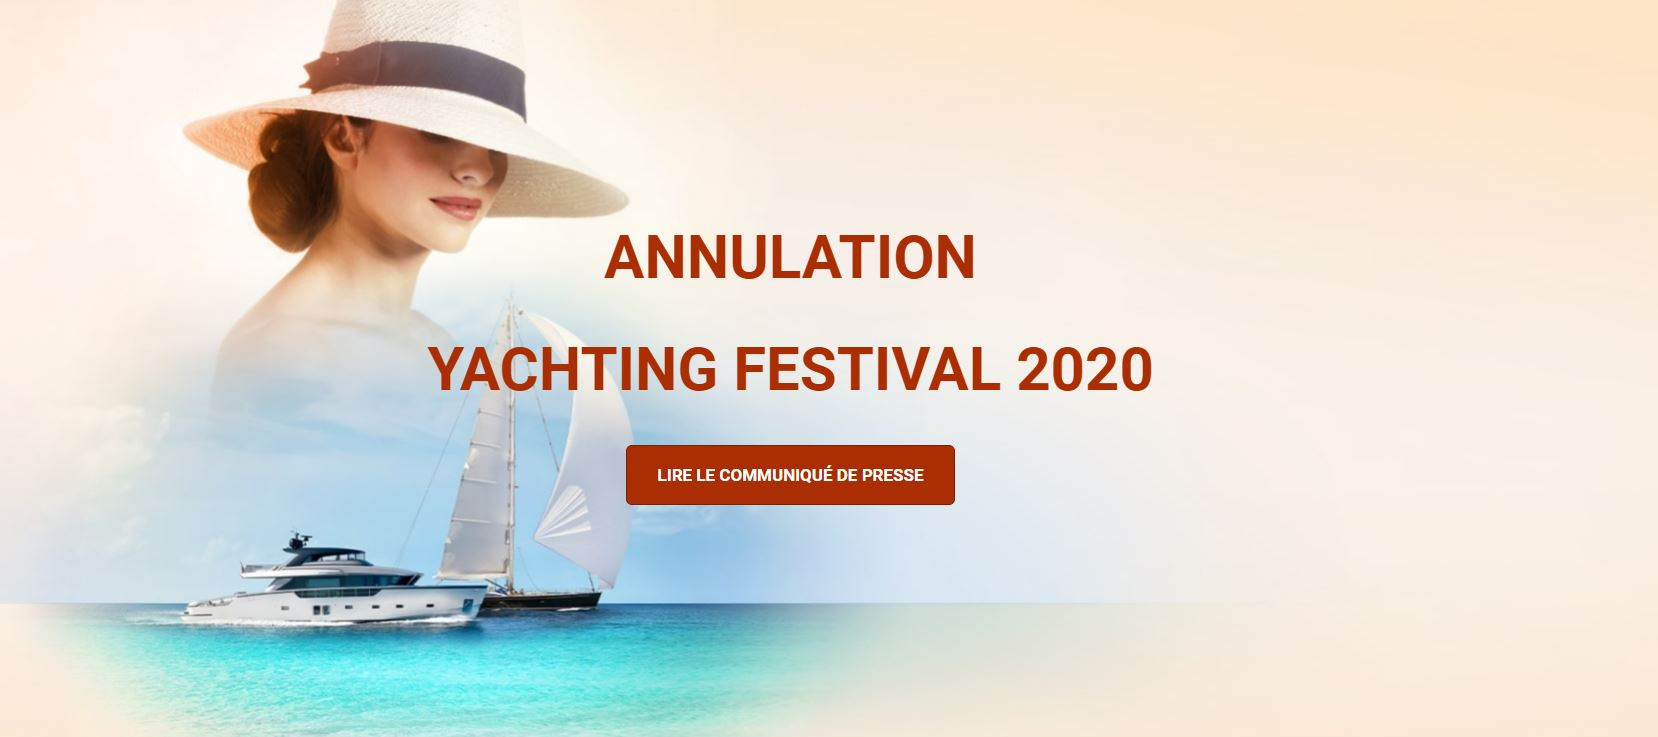 Annulation Yachting Festival de Cannes 2020 - Trawlers & Yachting